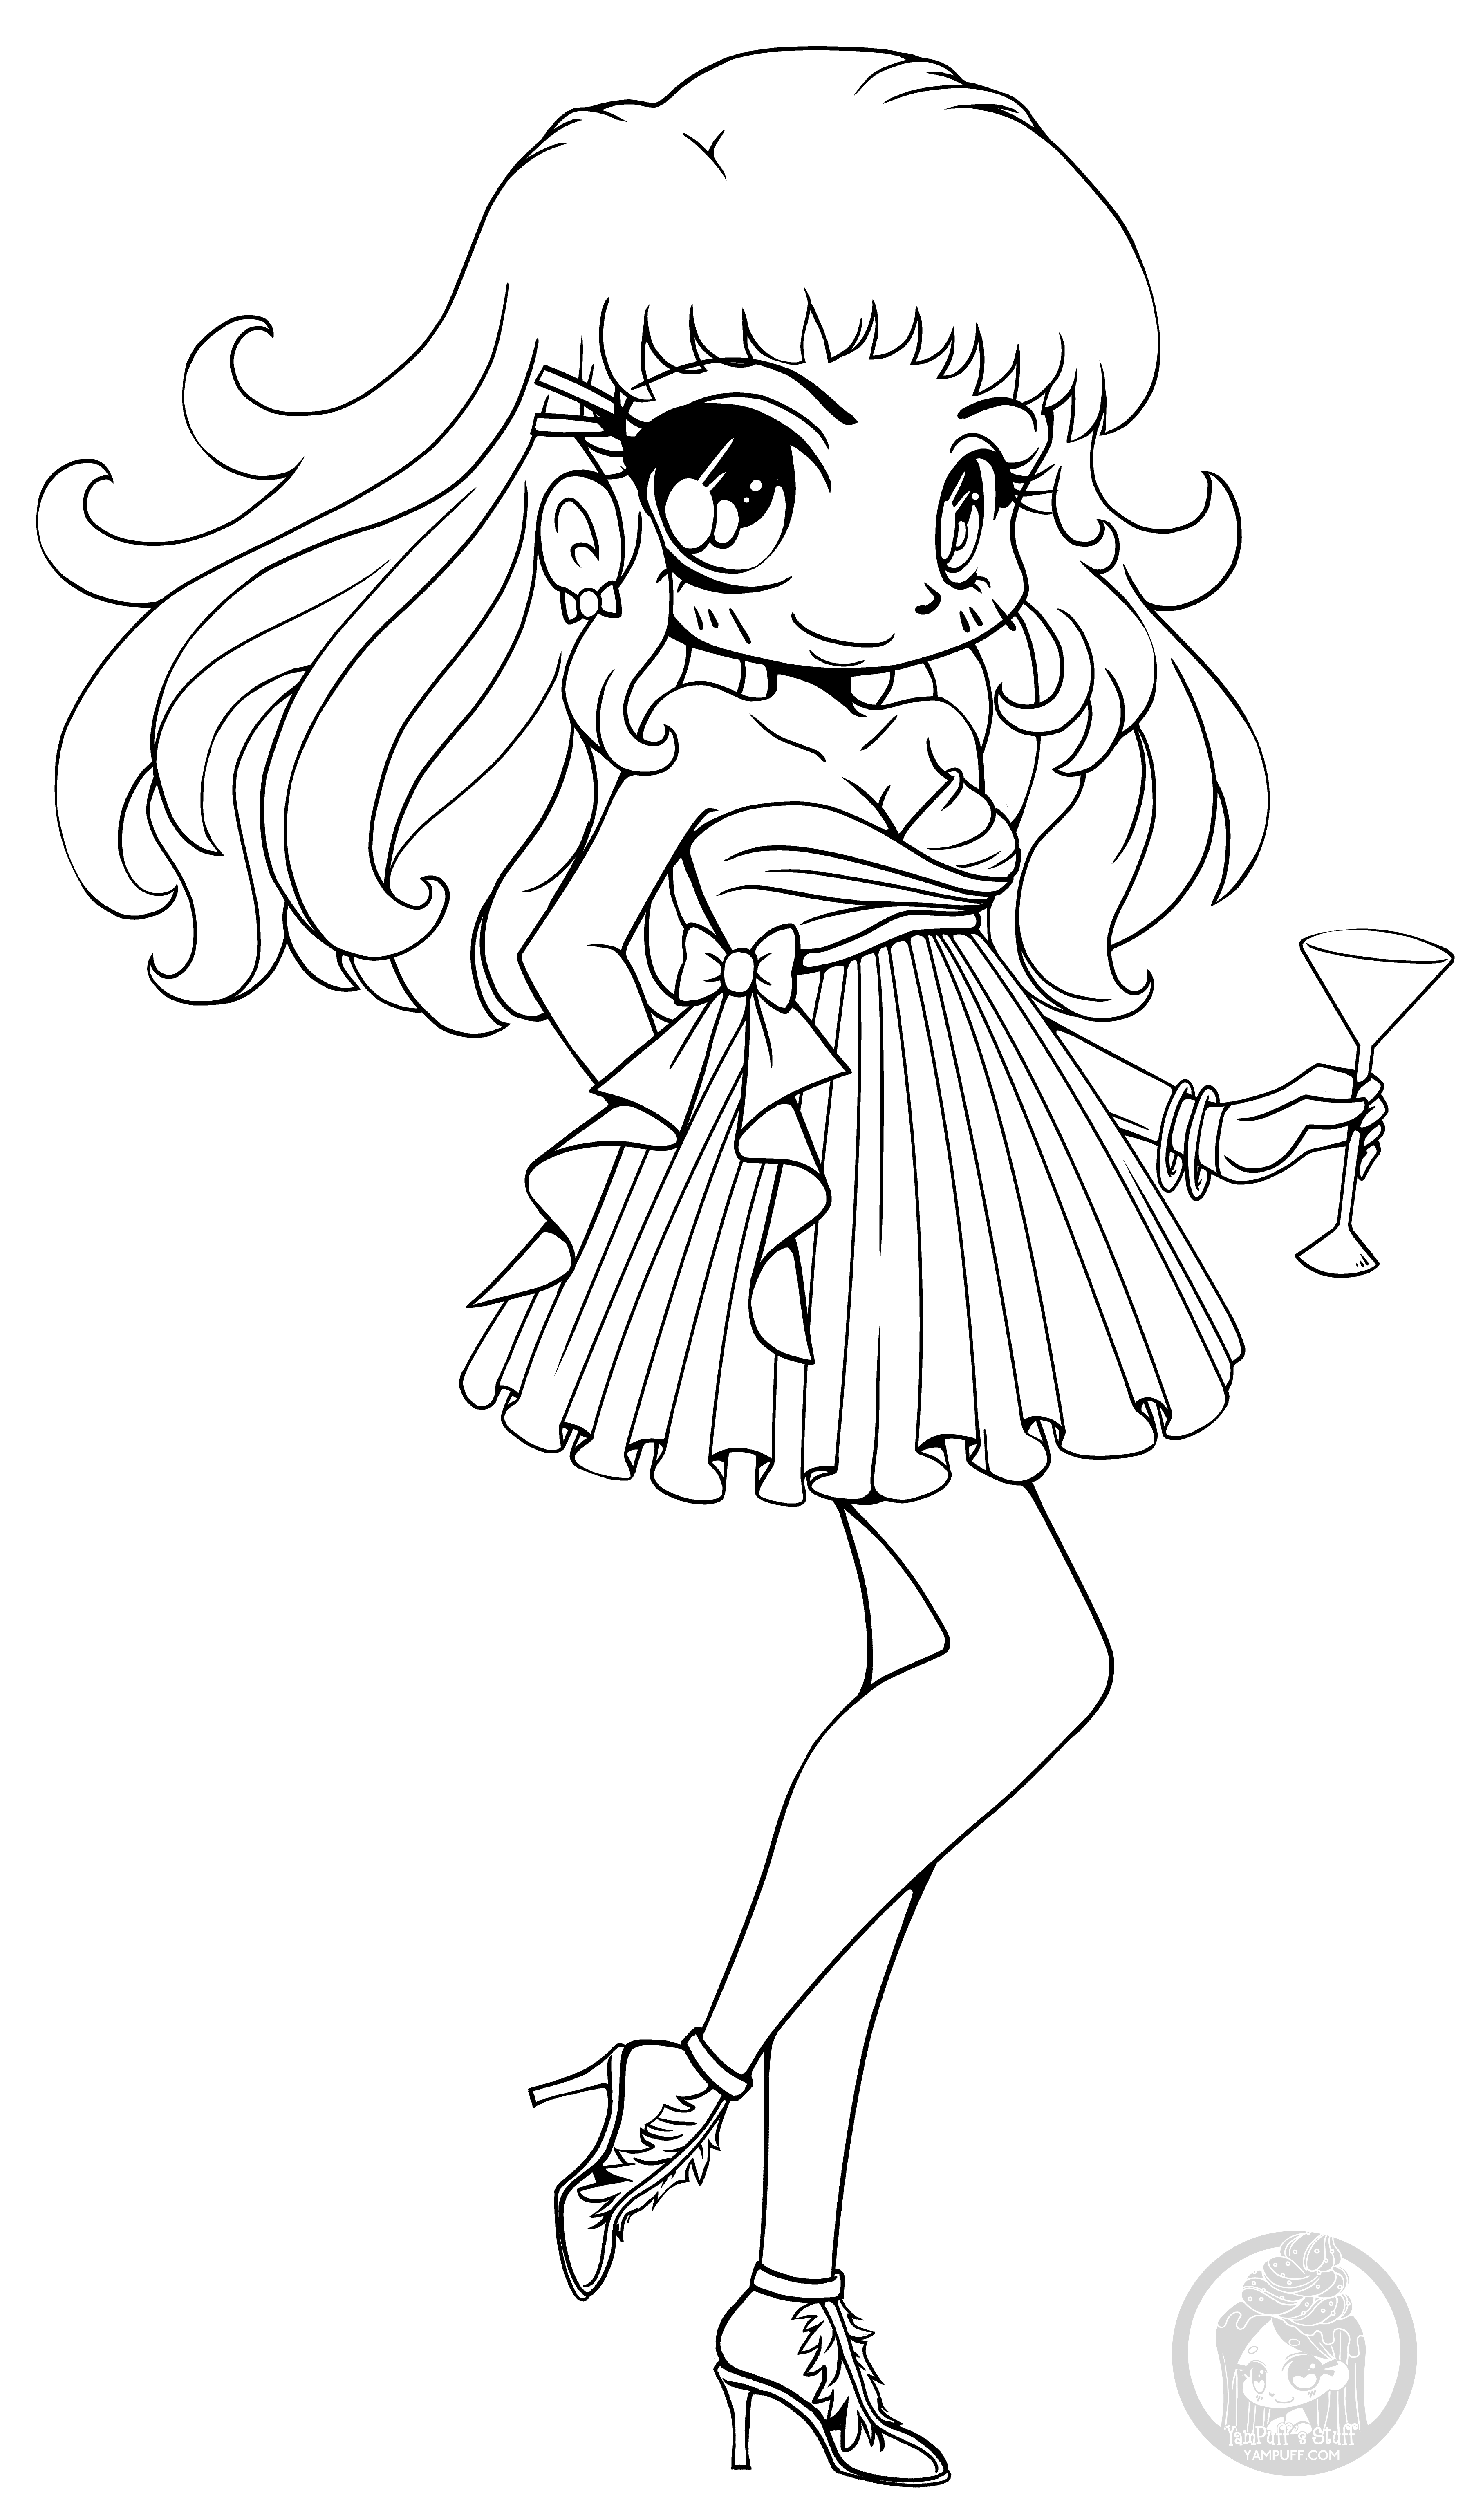 coloring pages anime chibi anime chibi clipart clipart suggest chibi pages coloring anime